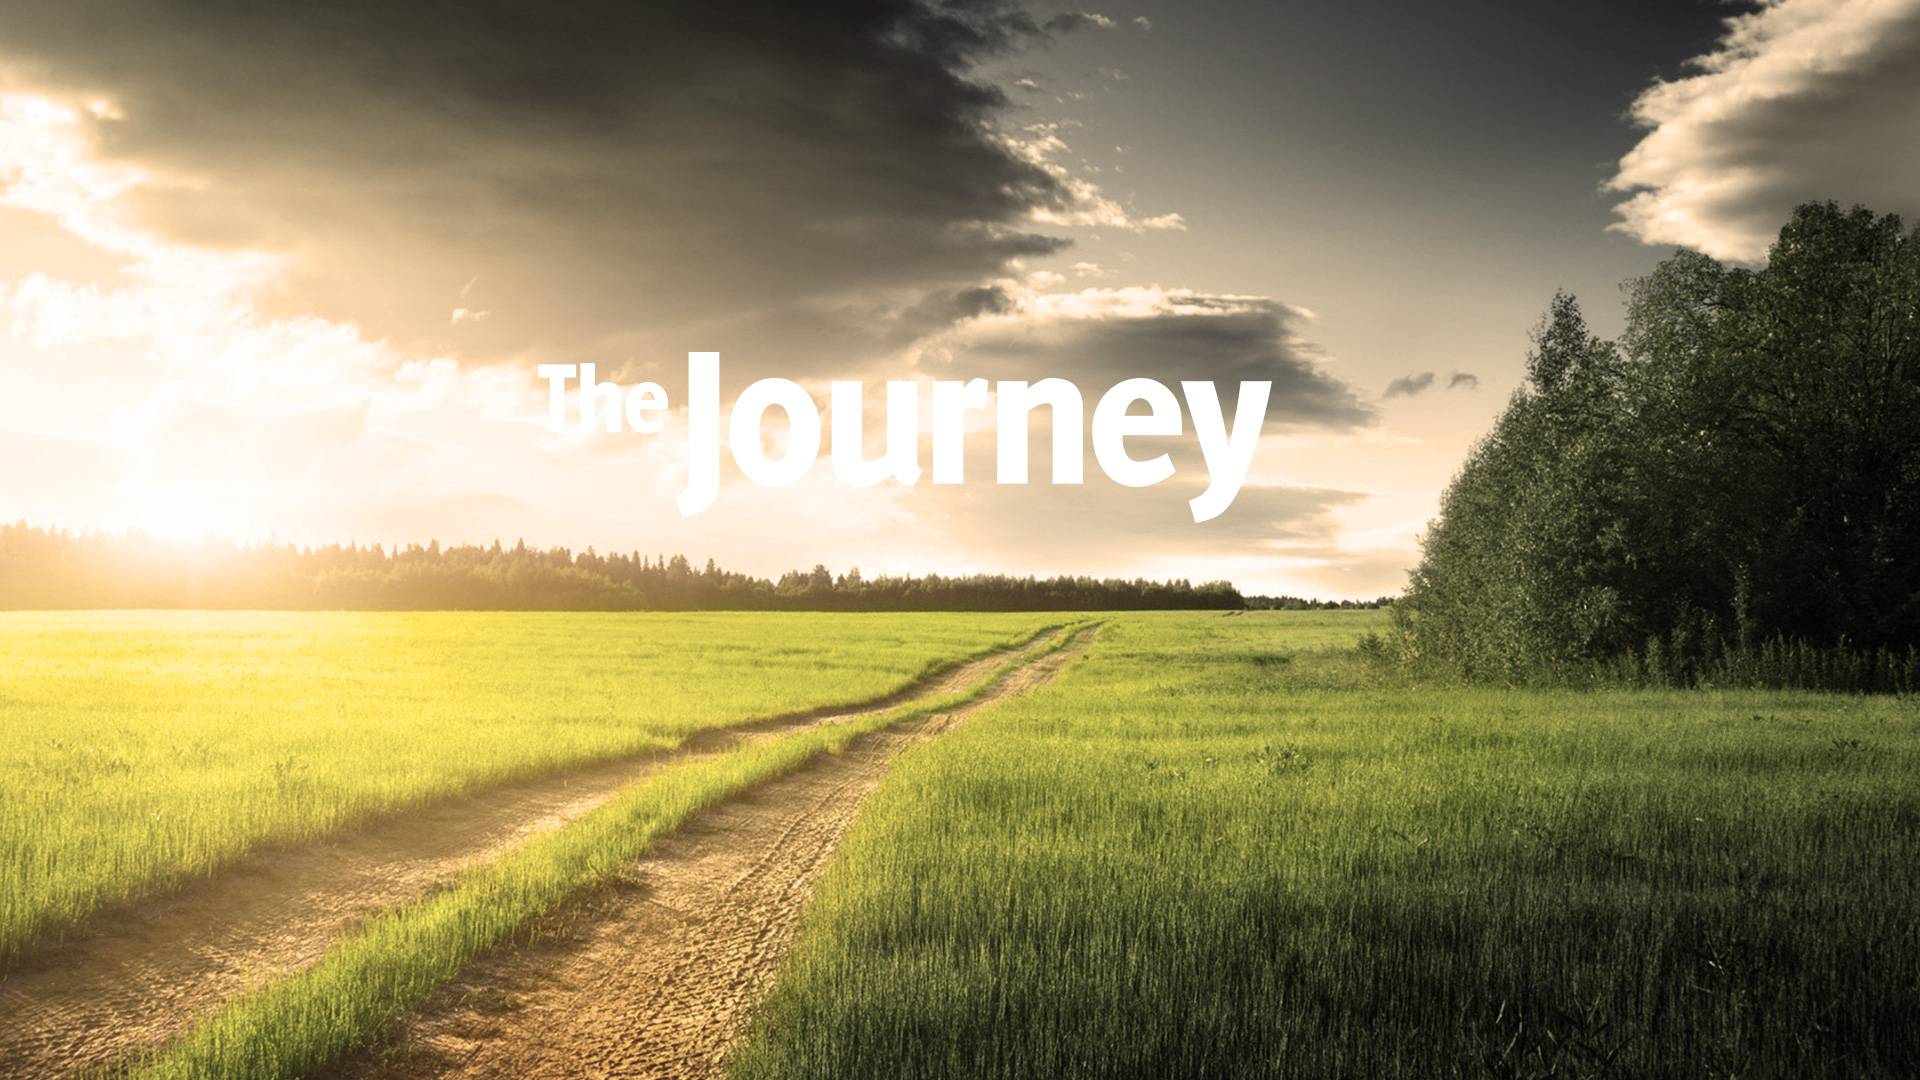 a journey The journey student rewards credit card can help students build credit with responsible use apply online.